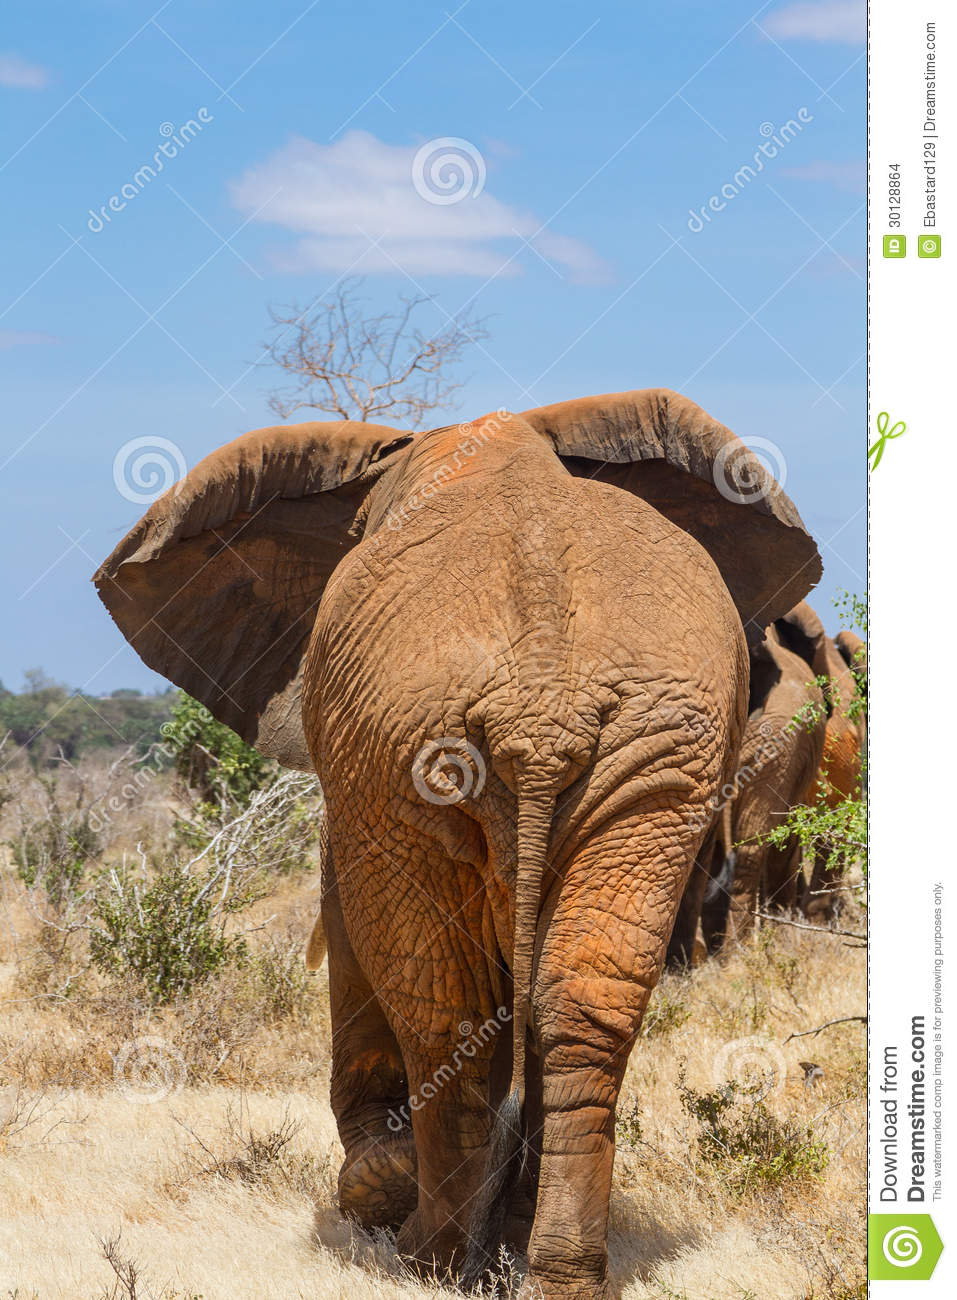 http://thumbs.dreamstime.com/z/rear-view-elephant-tsavo-kenya-30128864.jpg